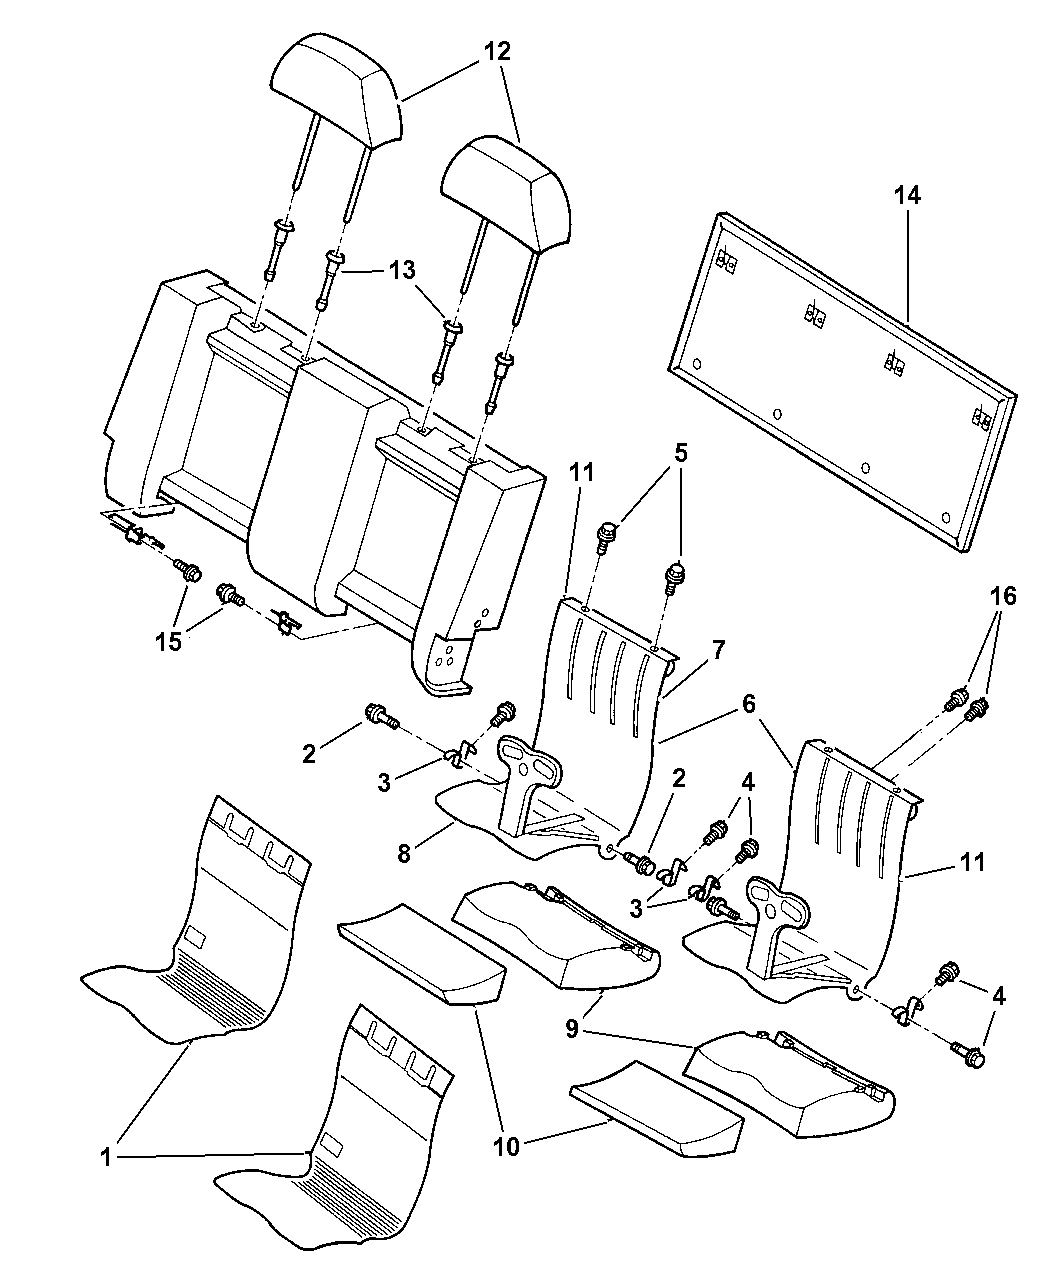 2000 chrysler town \u0026 country child seat reclining 2006 Chrysler Town and Country Parts Diagram